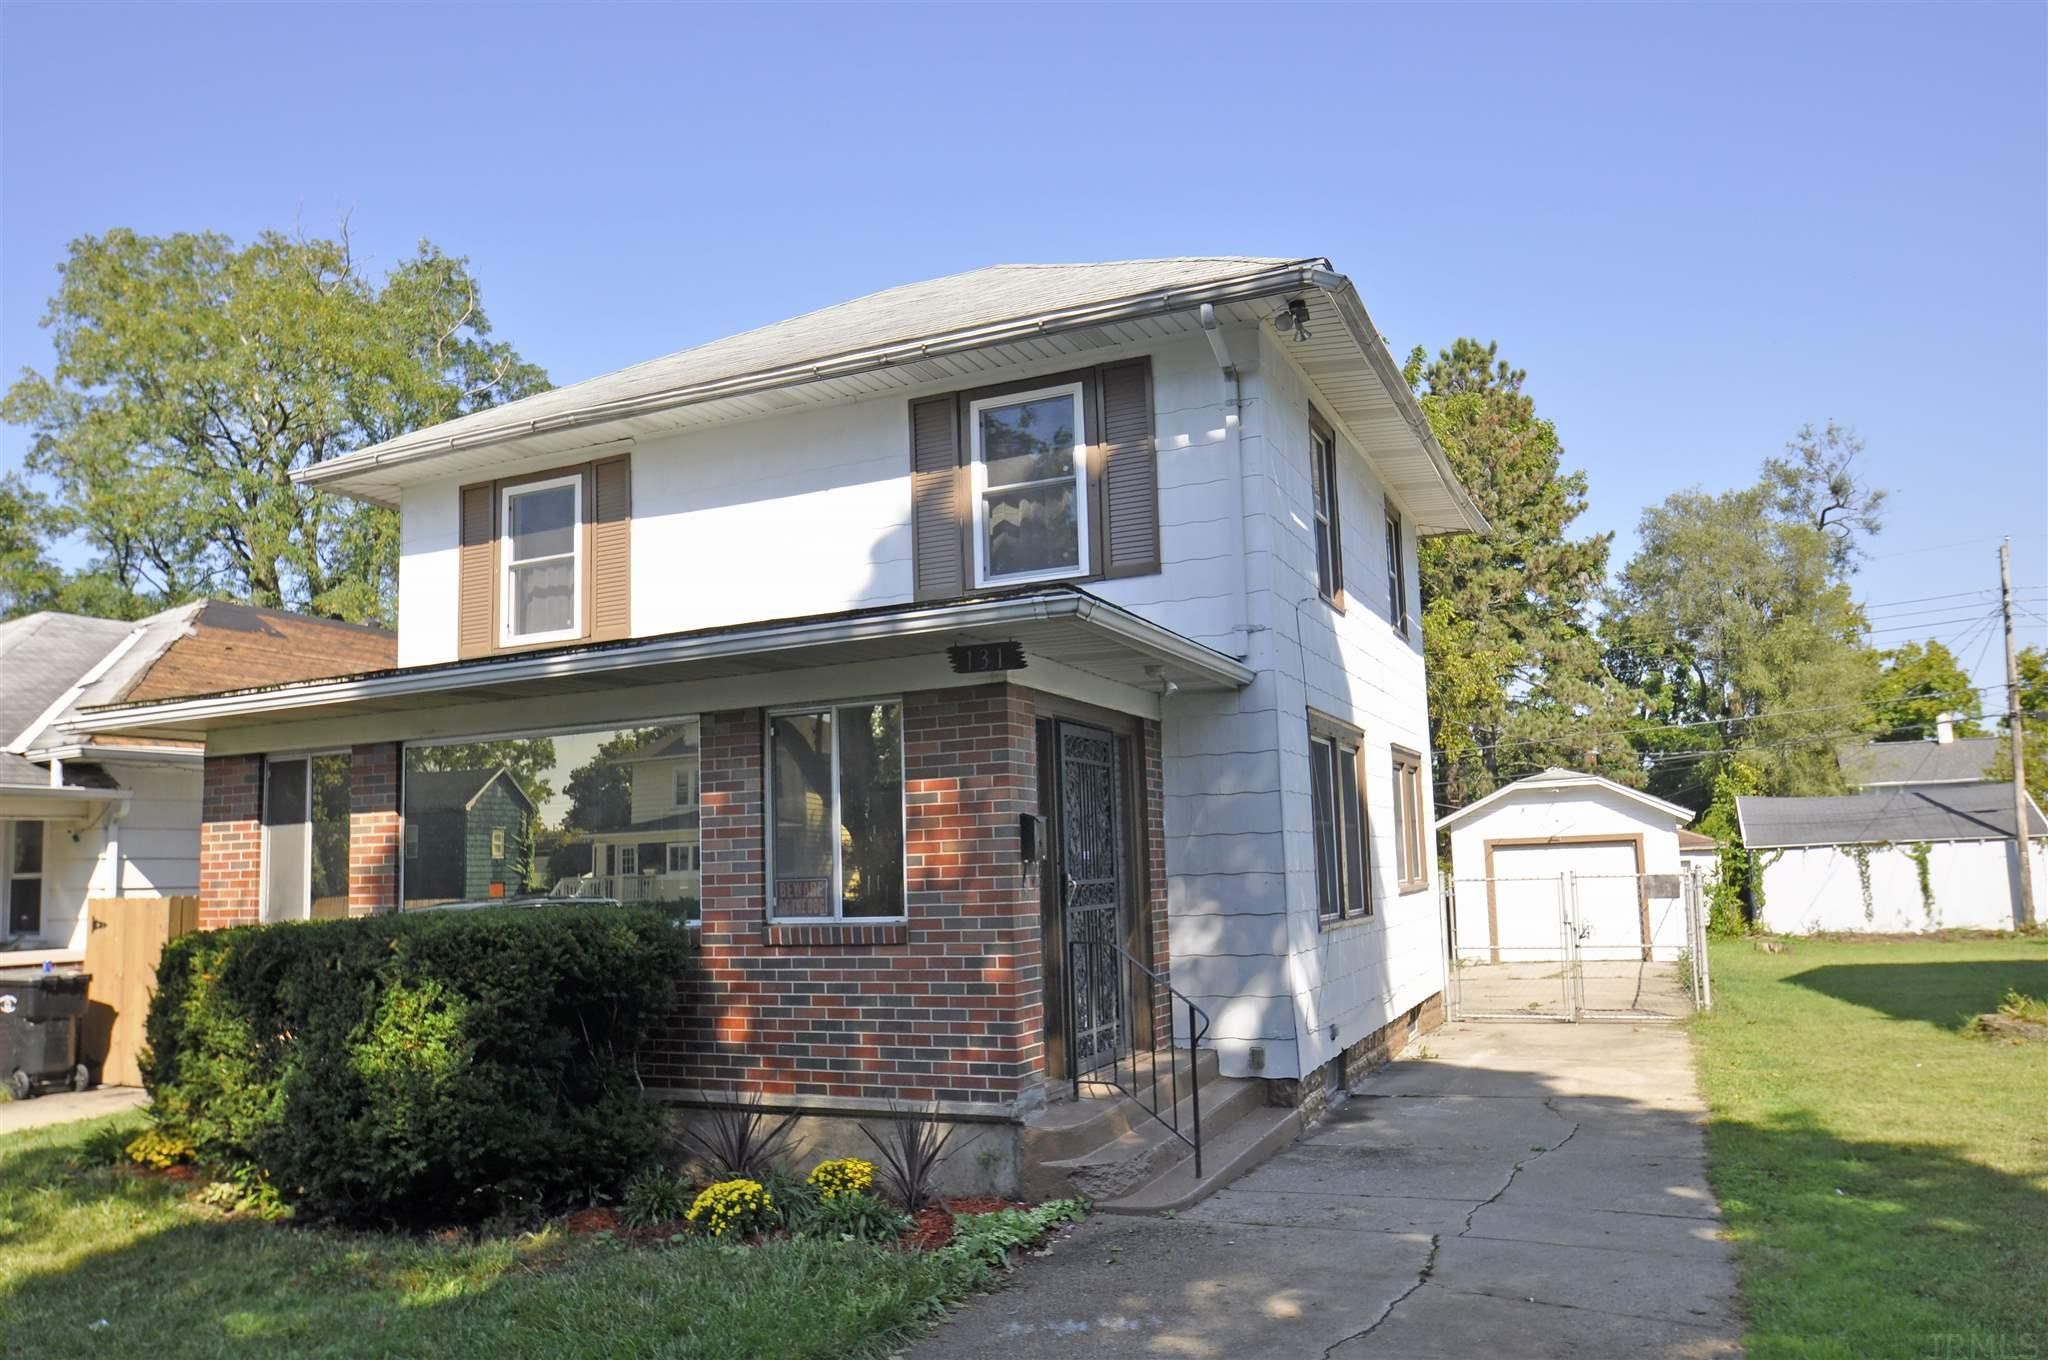 131 E Eckman South Bend, IN 46614